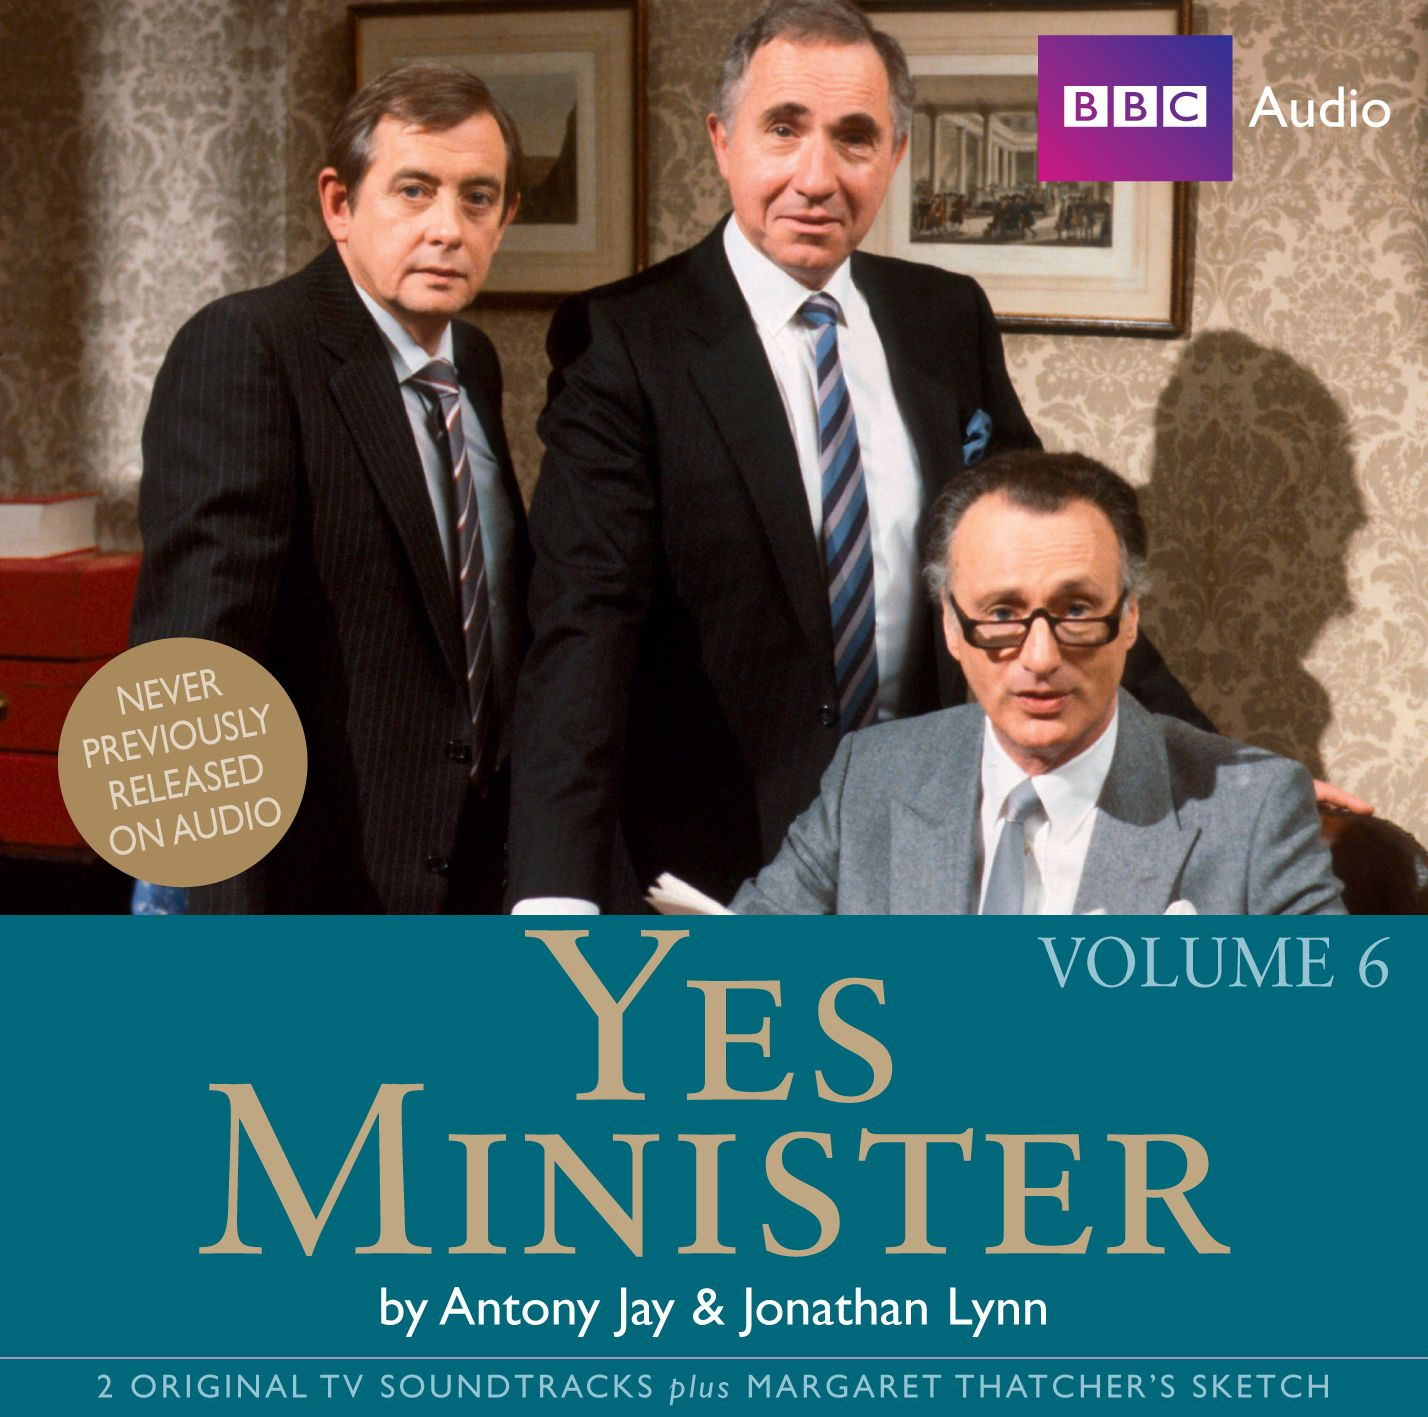 Comedy follows real life. This series was a great insight to what goes on in that wonderful elected house we call Parliament. A place so full of BS that is would grow wonder roses if given the chance!